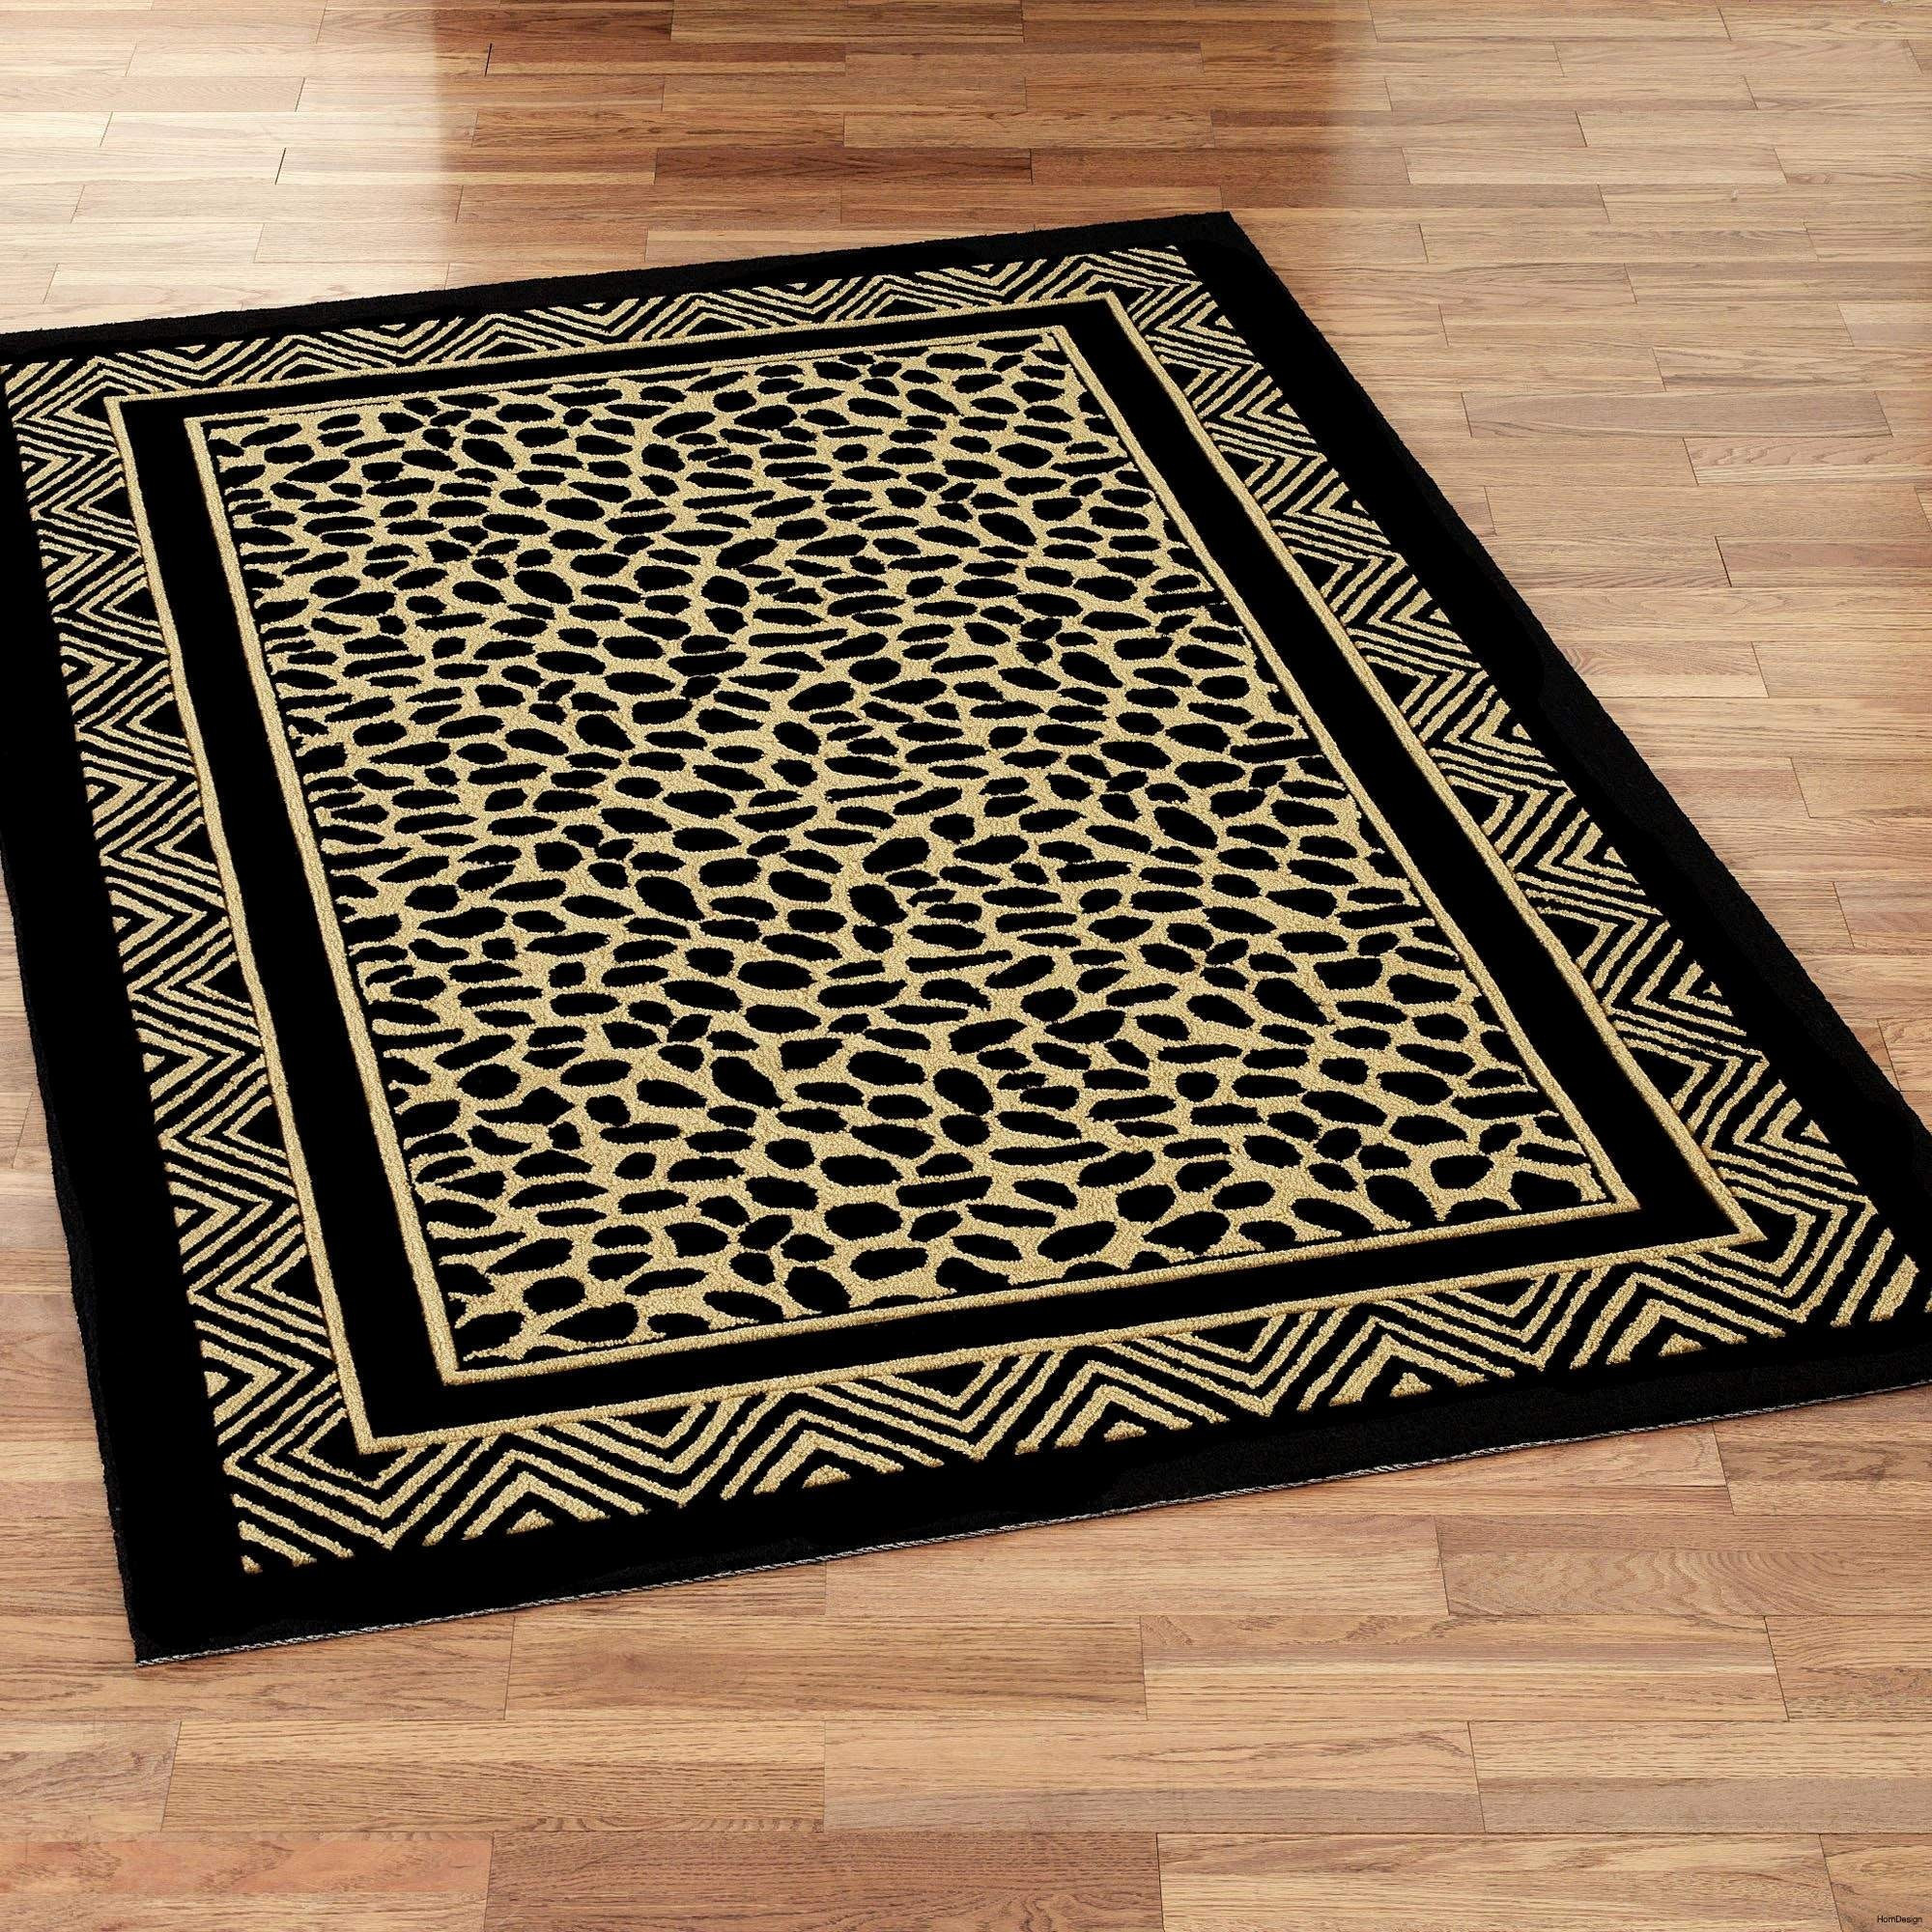 hardwood floor cleaning columbus ohio of http fredrikmathisen com columbus basement waterproofing within carpet cleaning victoria victoria best of area rug sale new area rugs for hardwood floors best jute rugs 0d of carpet cleaning victoria victoria